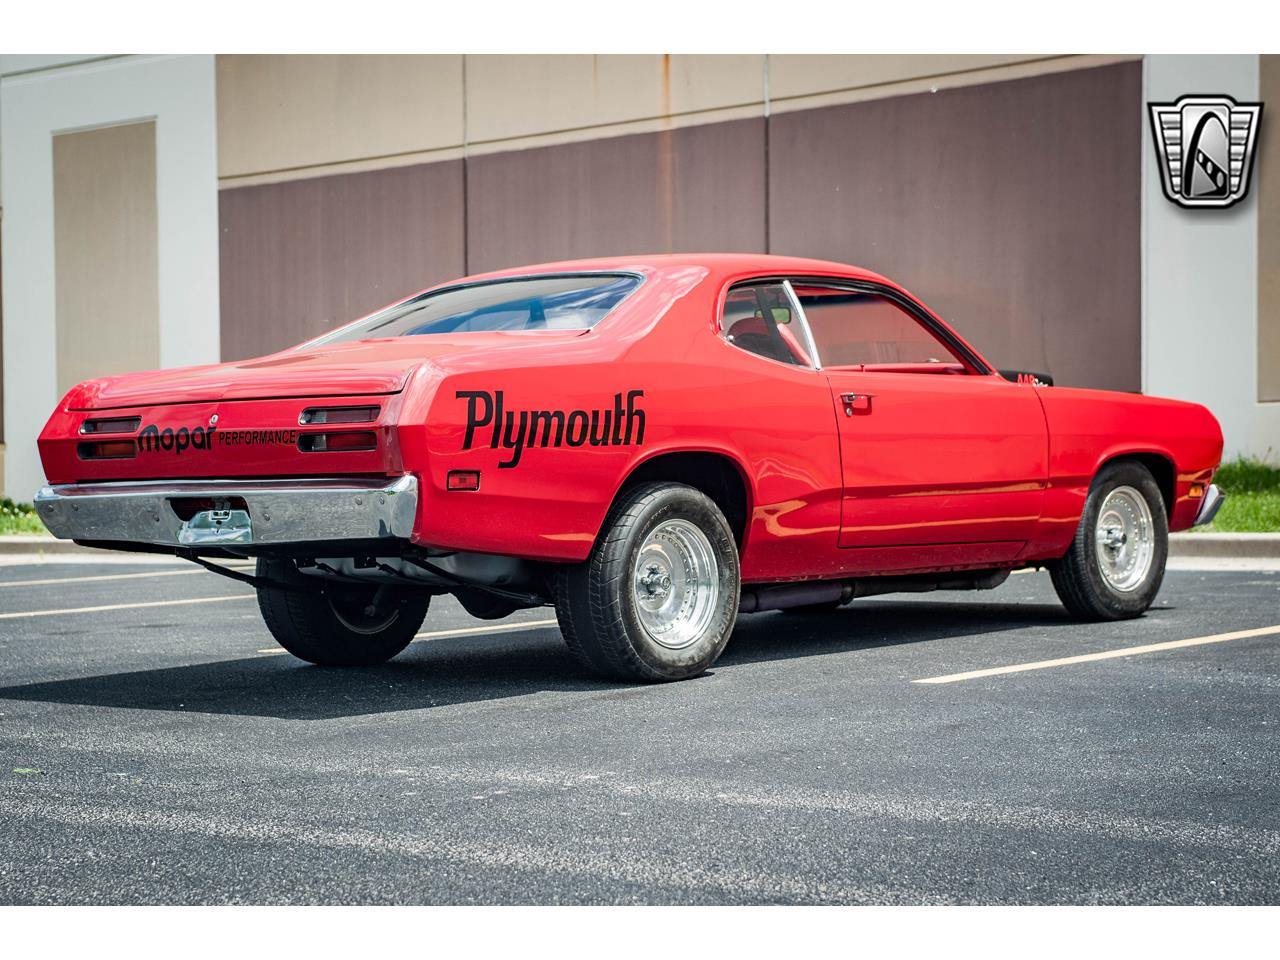 Large Picture of Classic '71 Plymouth Duster - $30,000.00 Offered by Gateway Classic Cars - St. Louis - QB9U